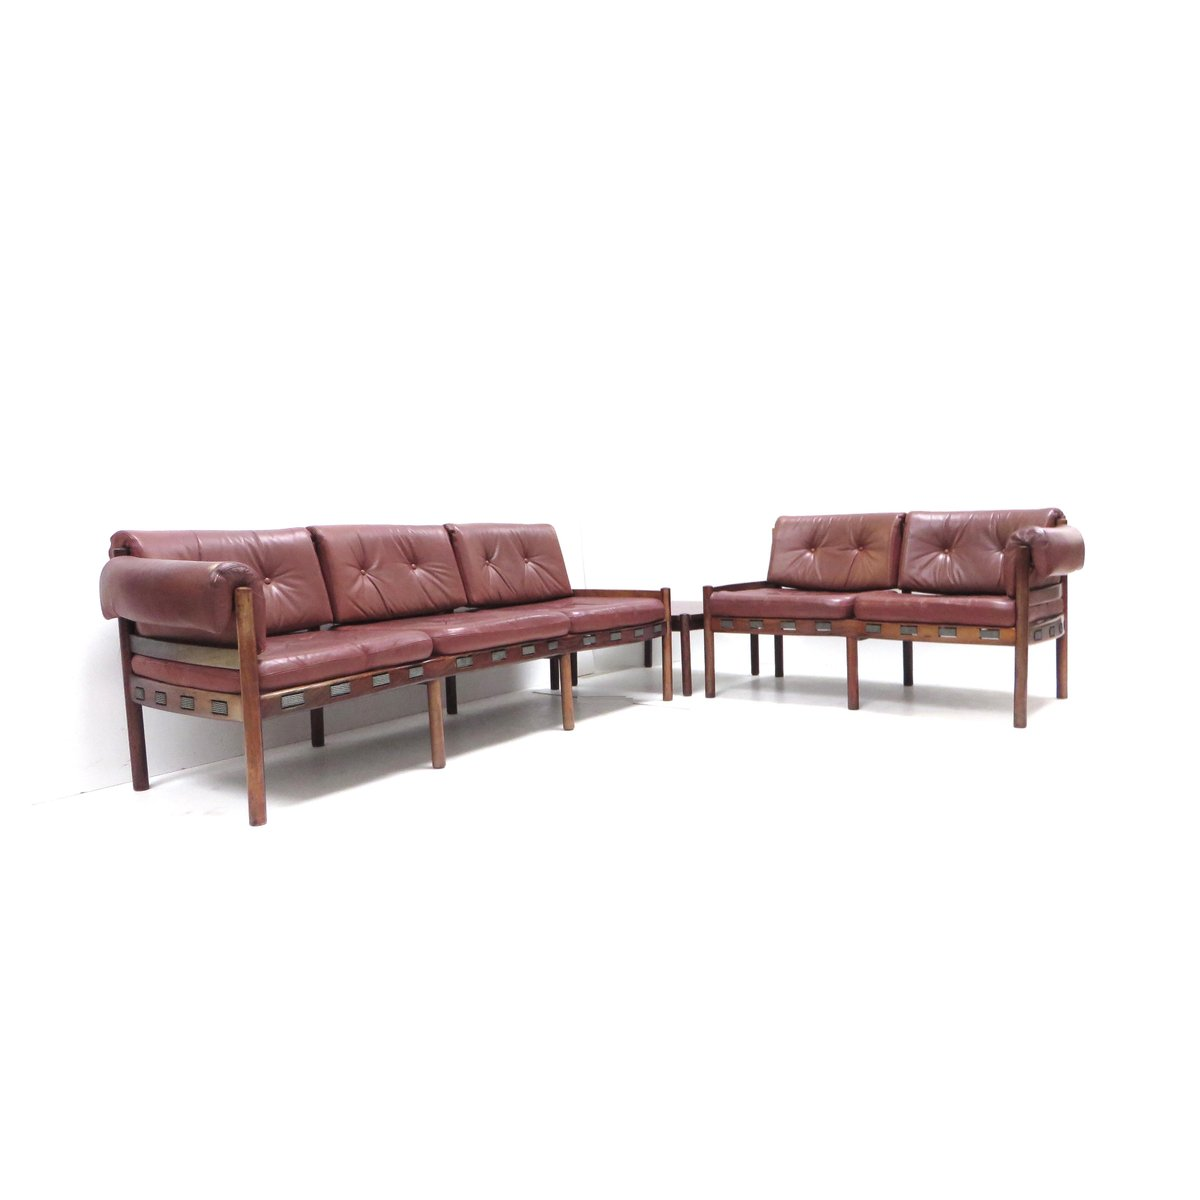 Corner Sofa Bed London Sale: Leather Corner Sofa With Table, 1960s For Sale At Pamono